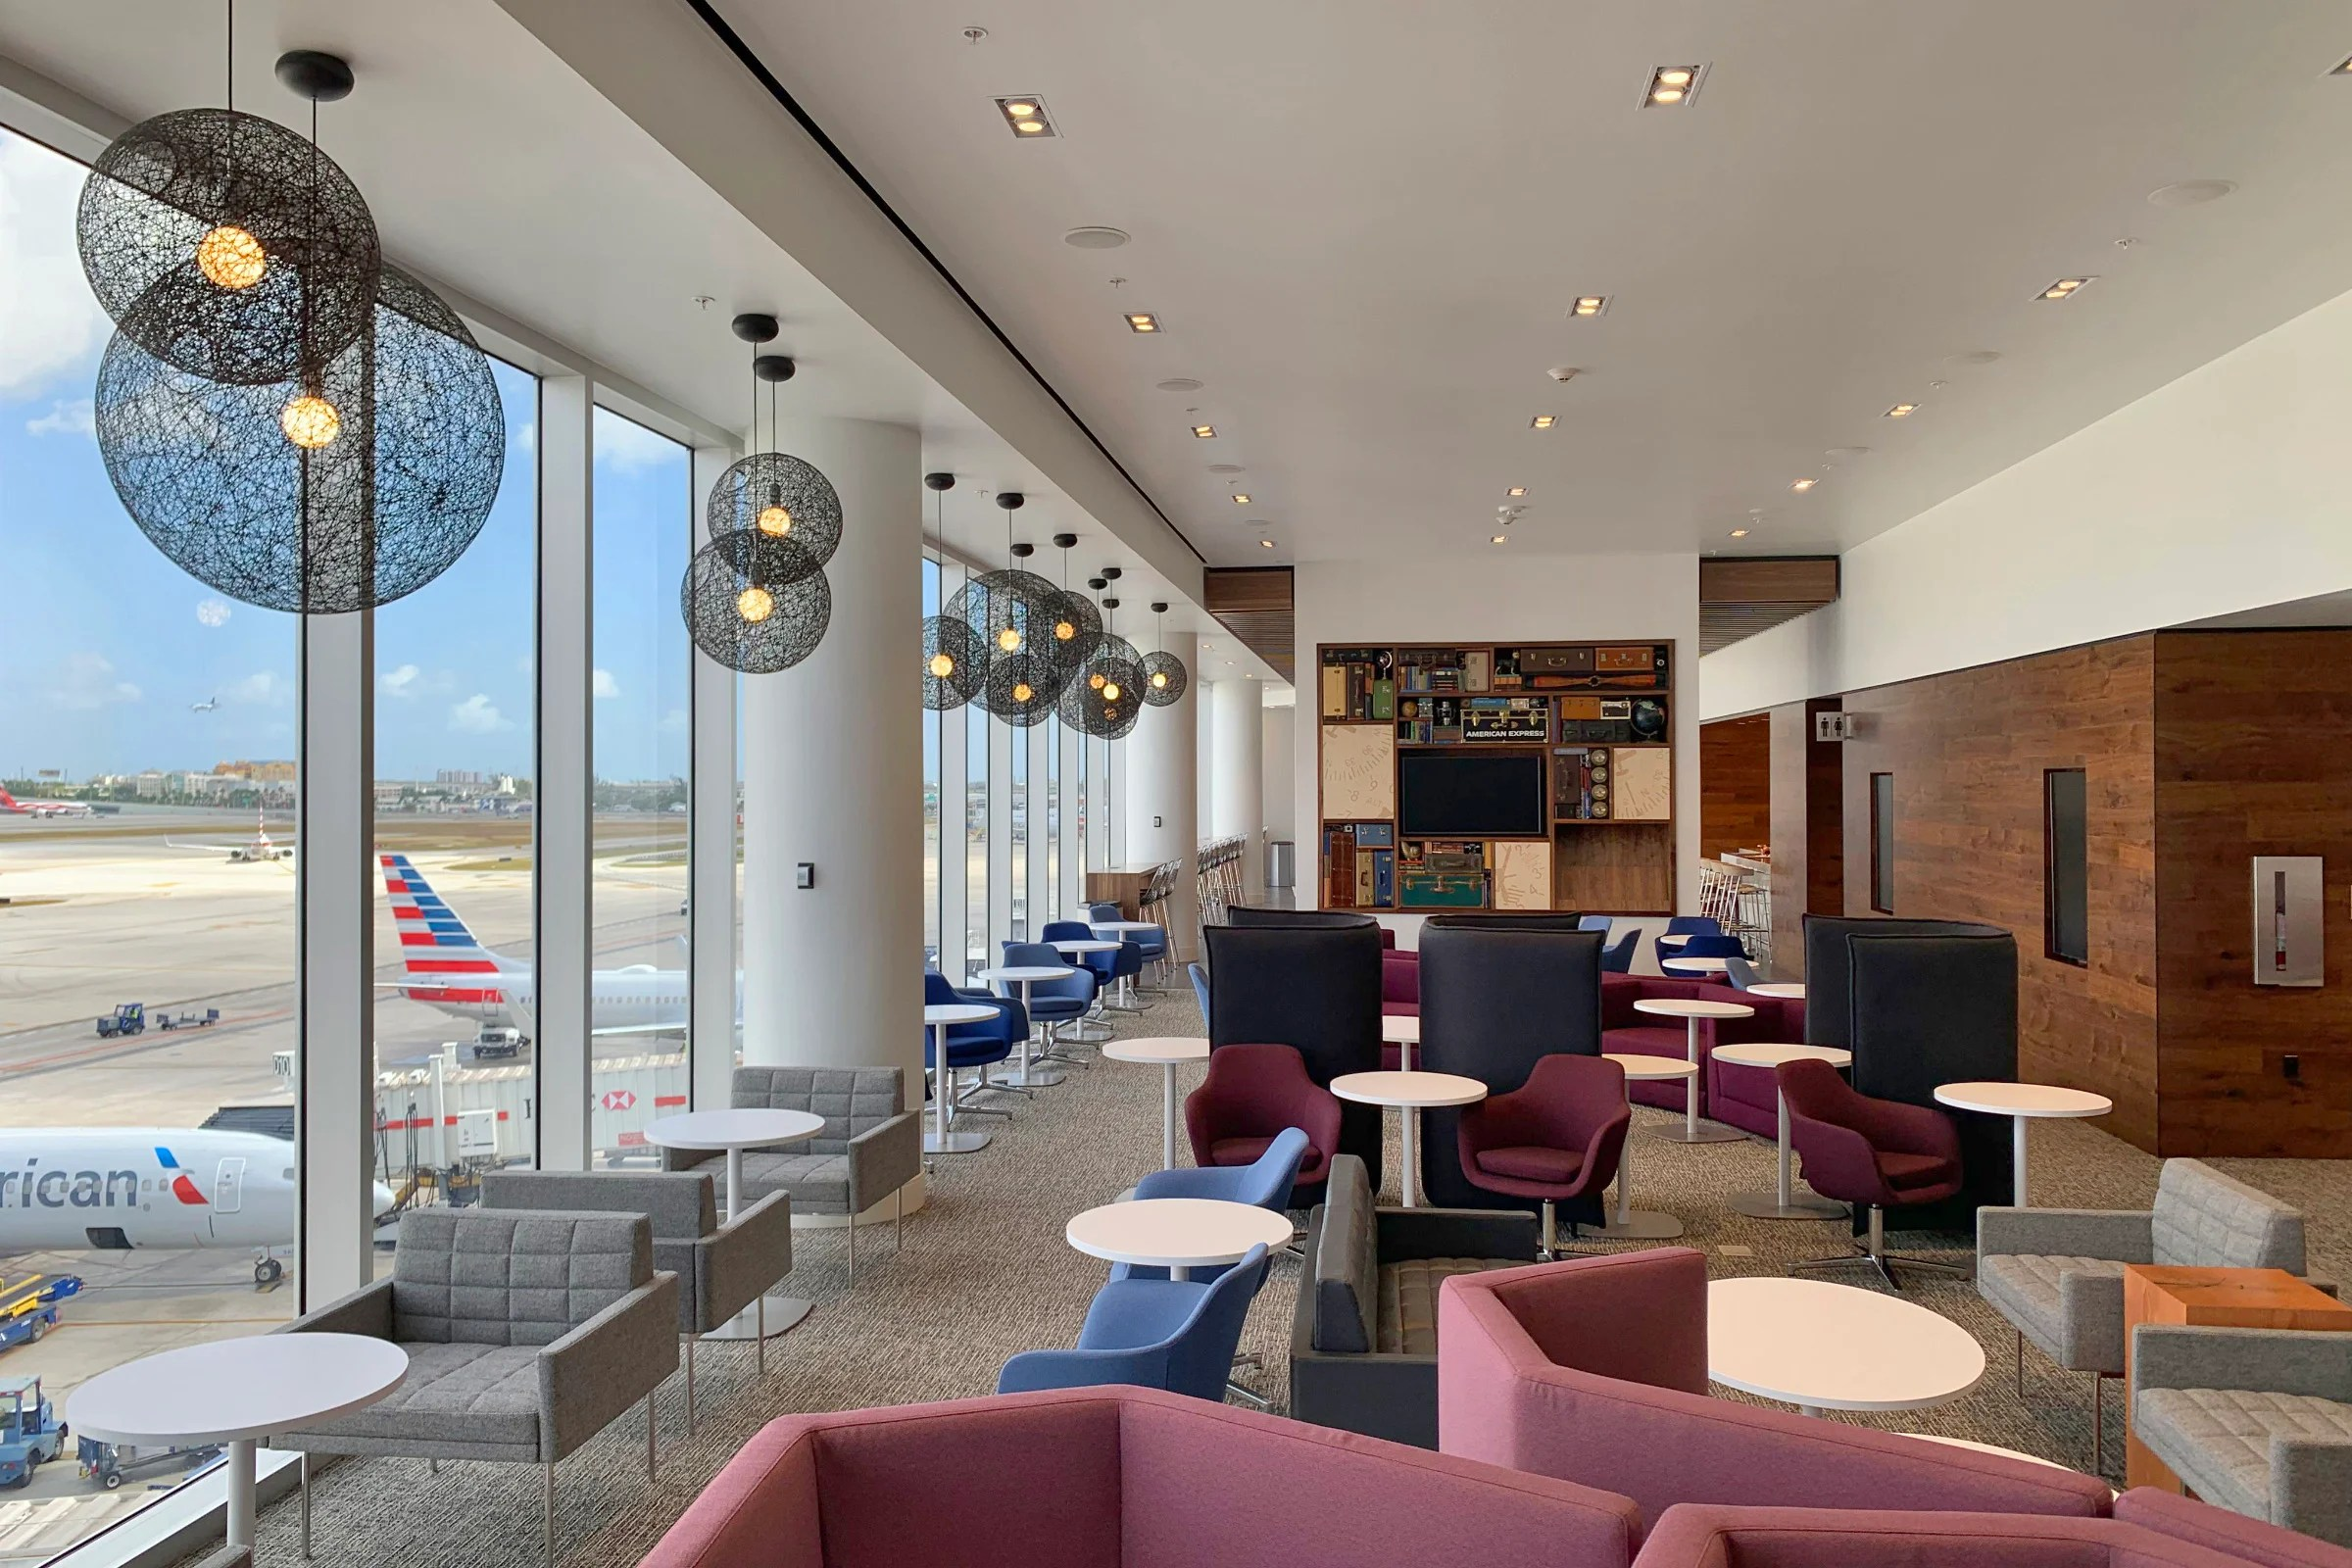 Amex's Expanded Miami Centurion Lounge Is Now Open